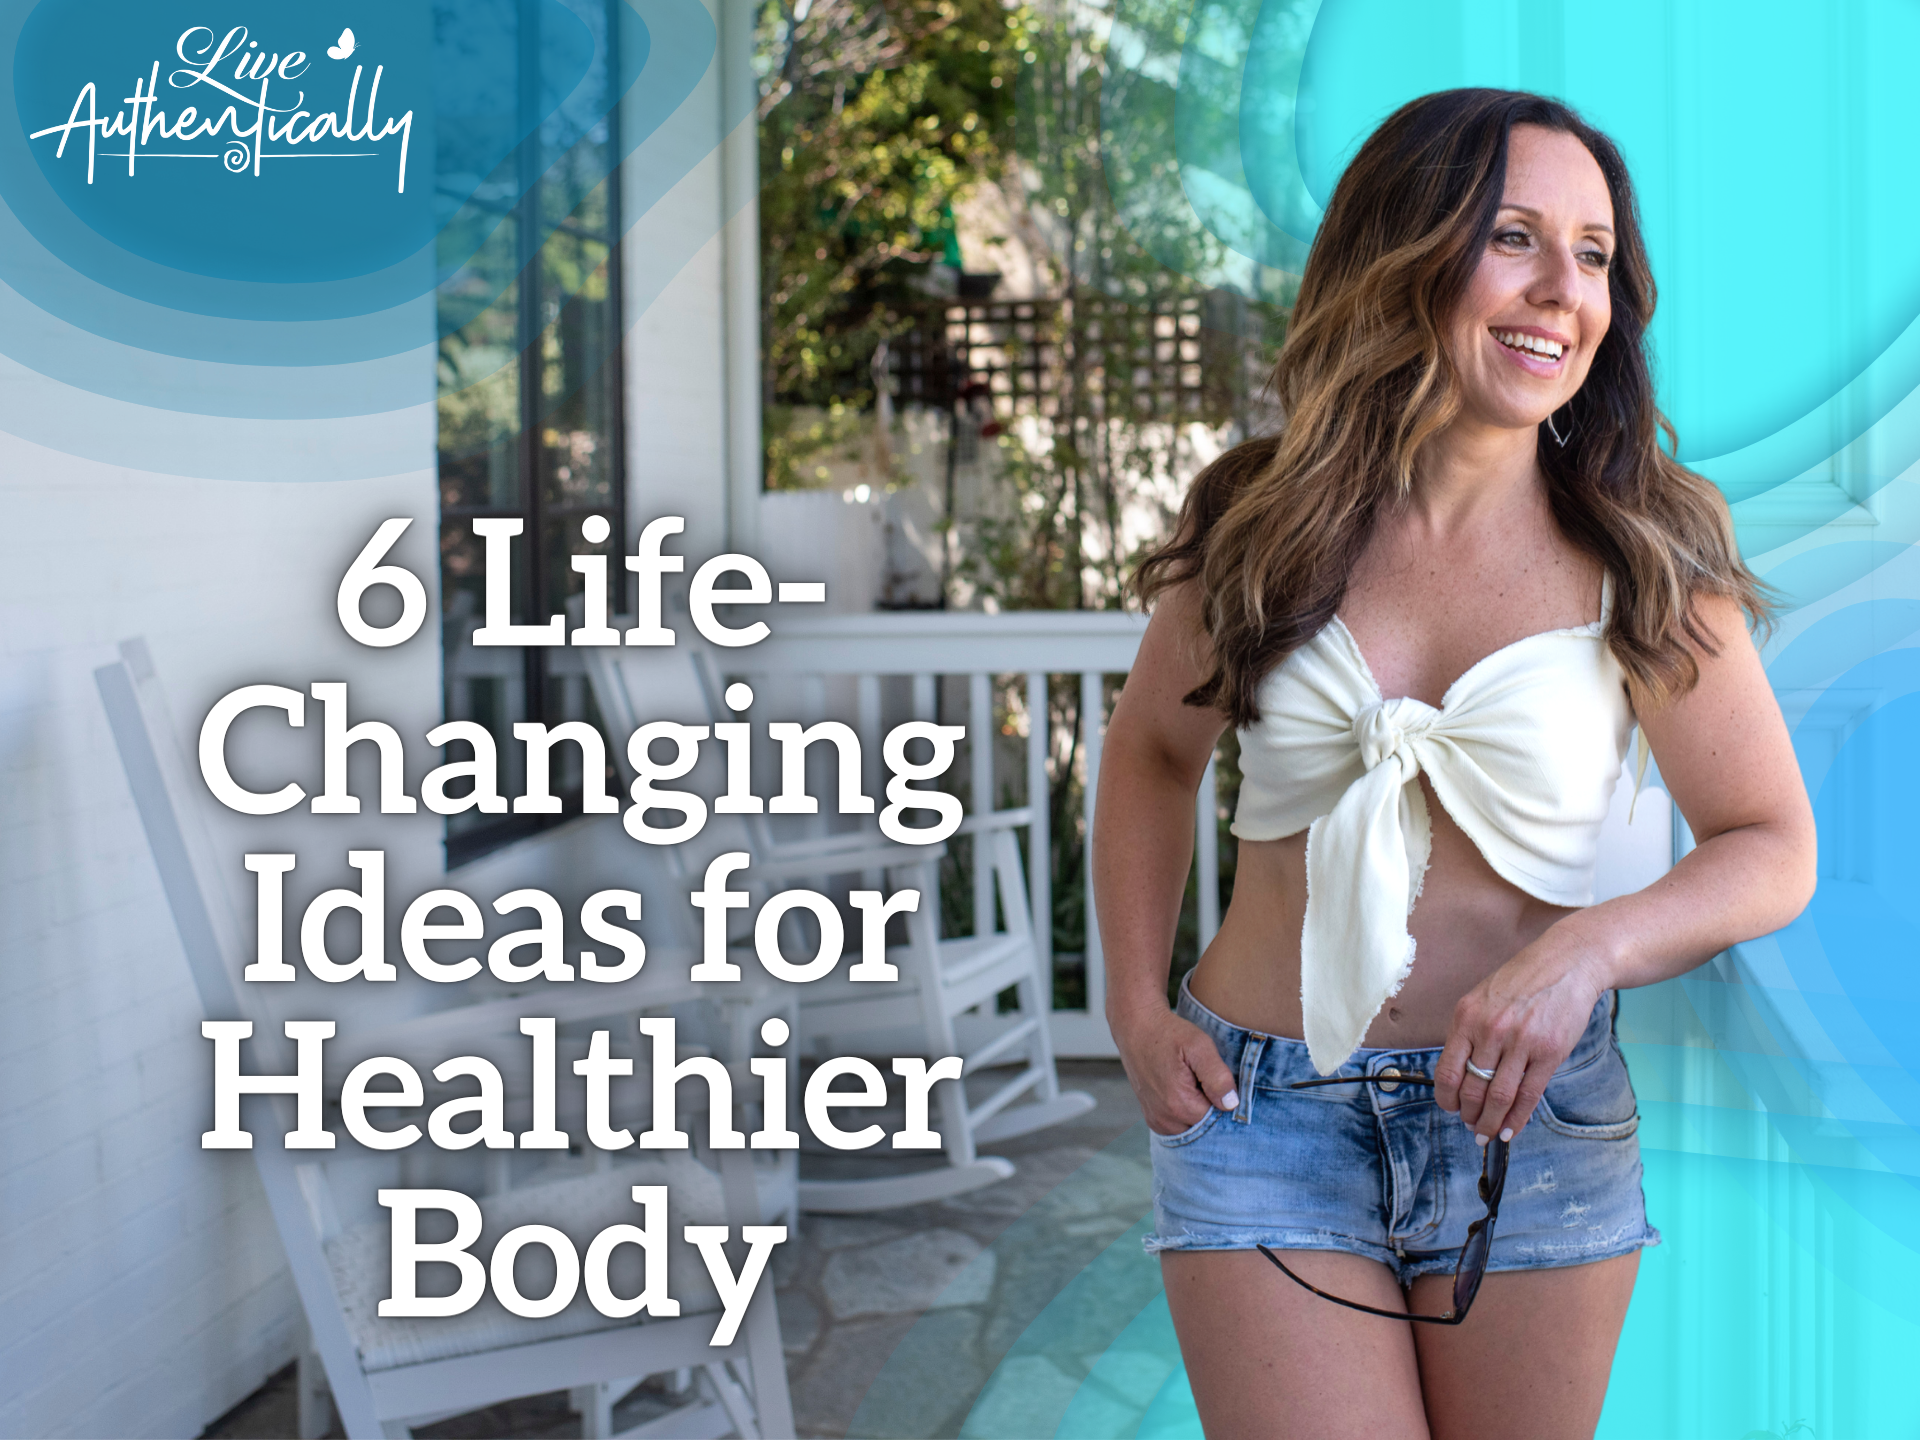 6 Life-Changing Ideas for Healthier Body